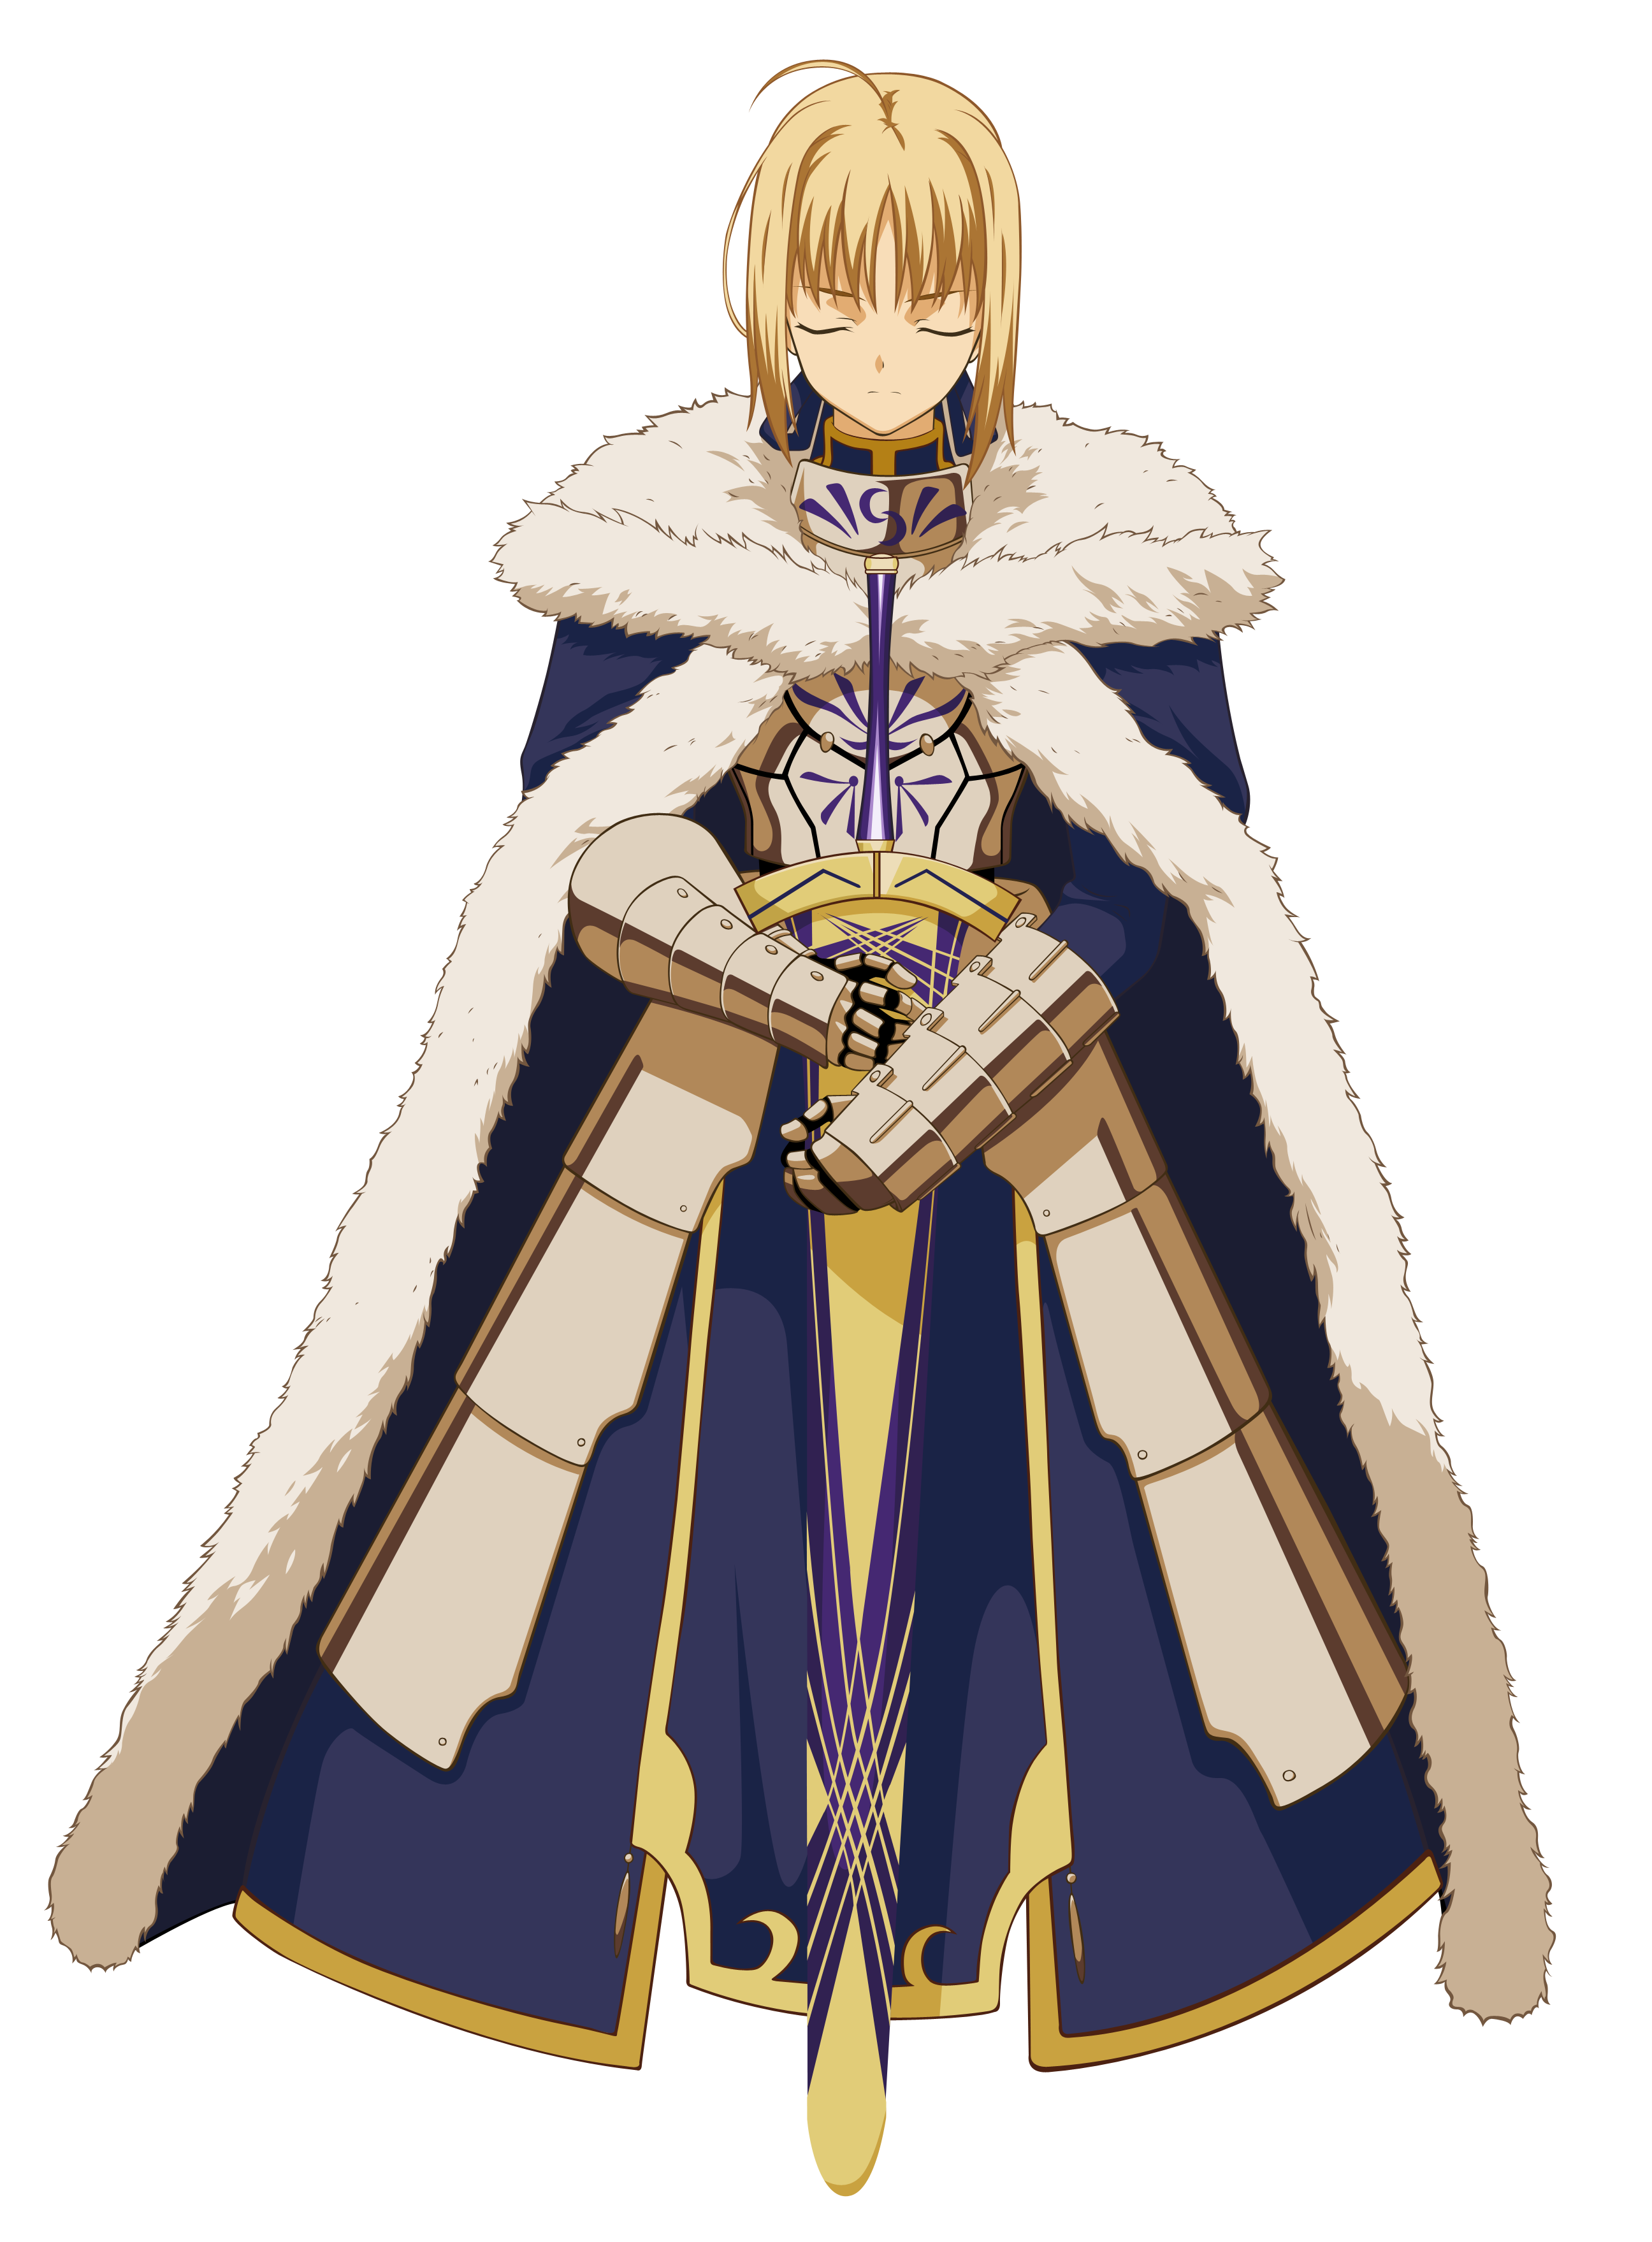 Saber vector. Our graceful king